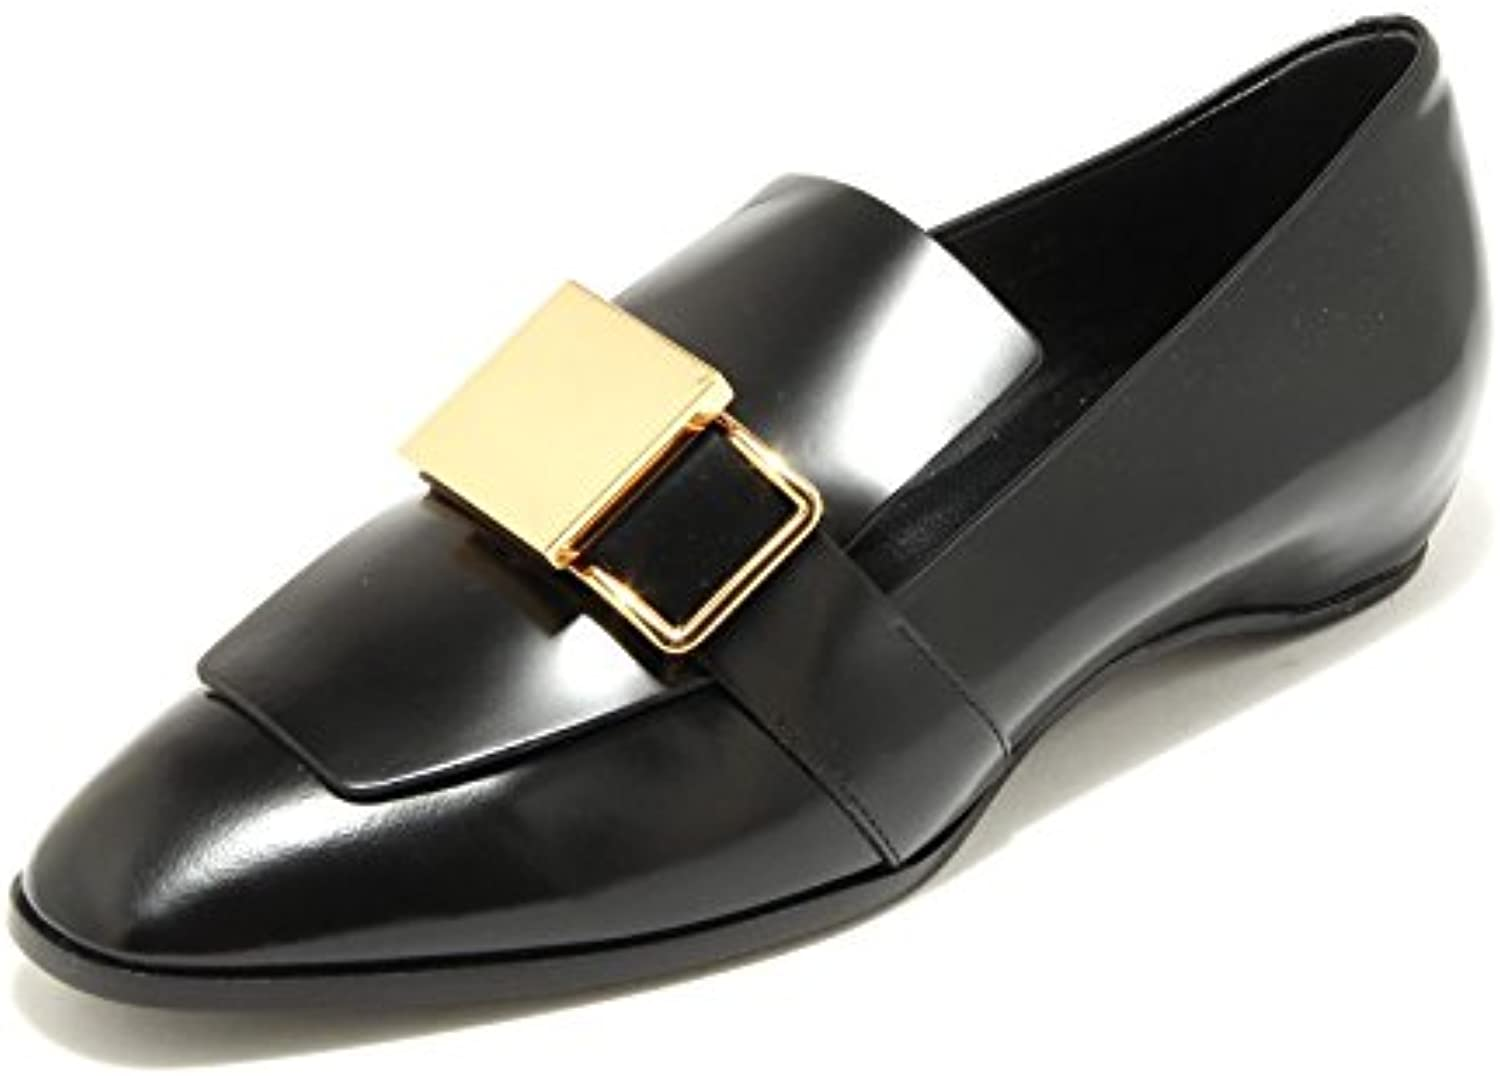 Tod's Scarpa 4243g Cuoio Loafer Donna Women Shoes Mocassino rwfZaWr